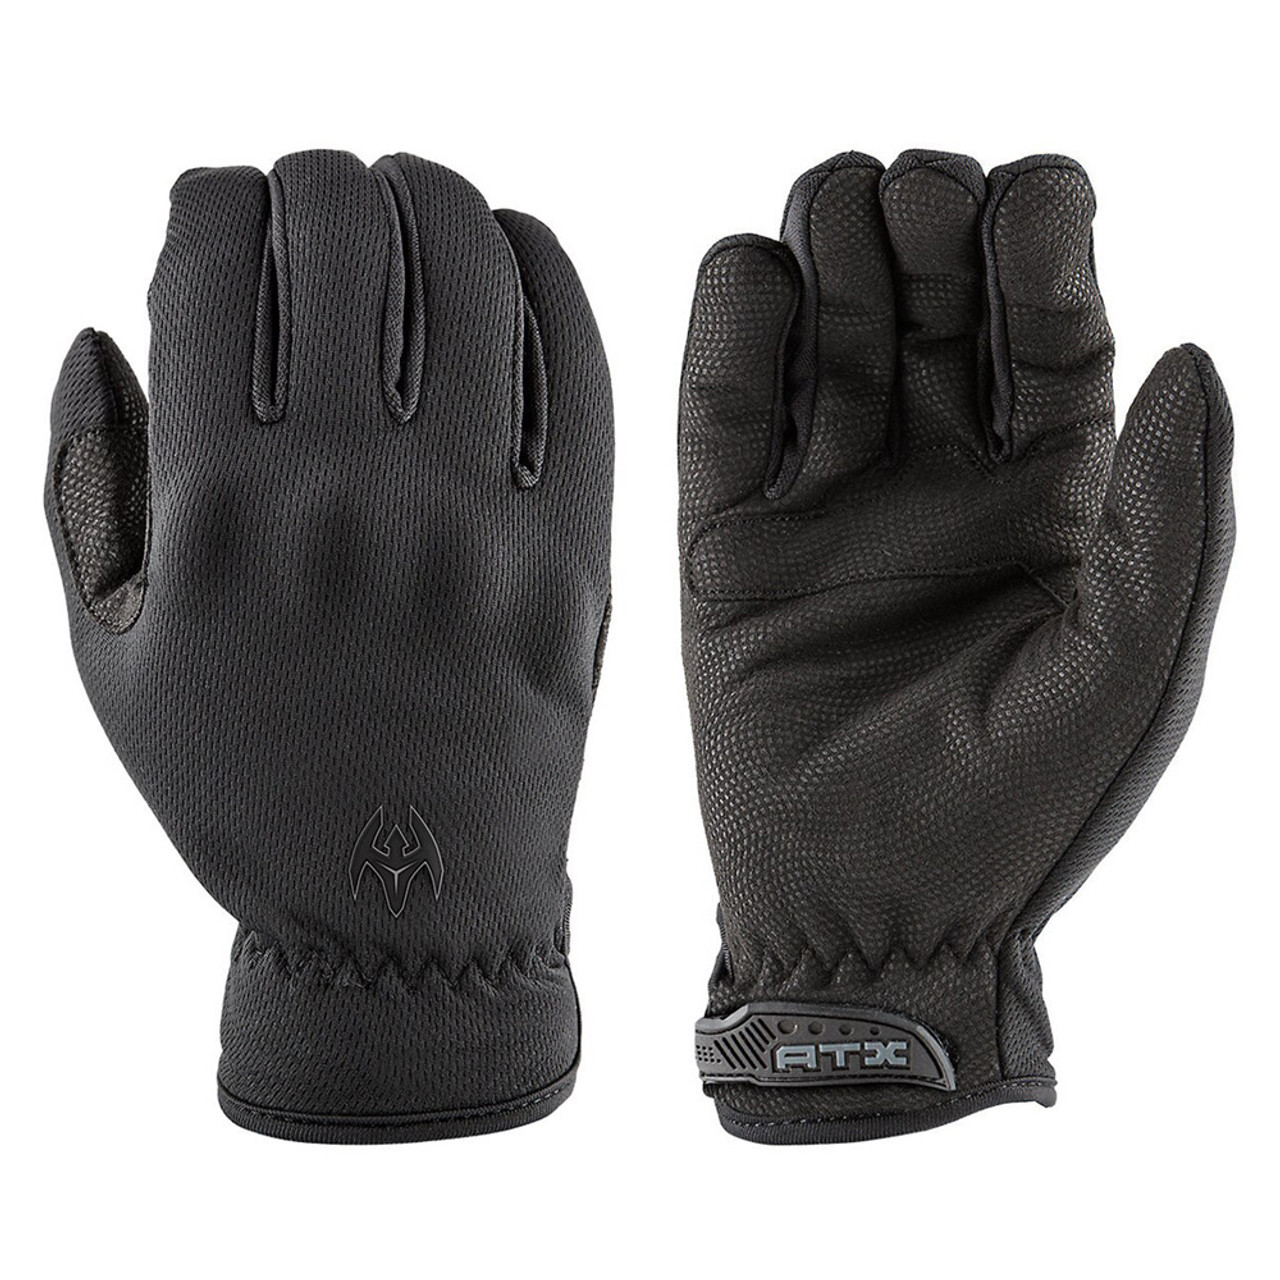 Black Cold Weather Insulated Leather Police Gloves